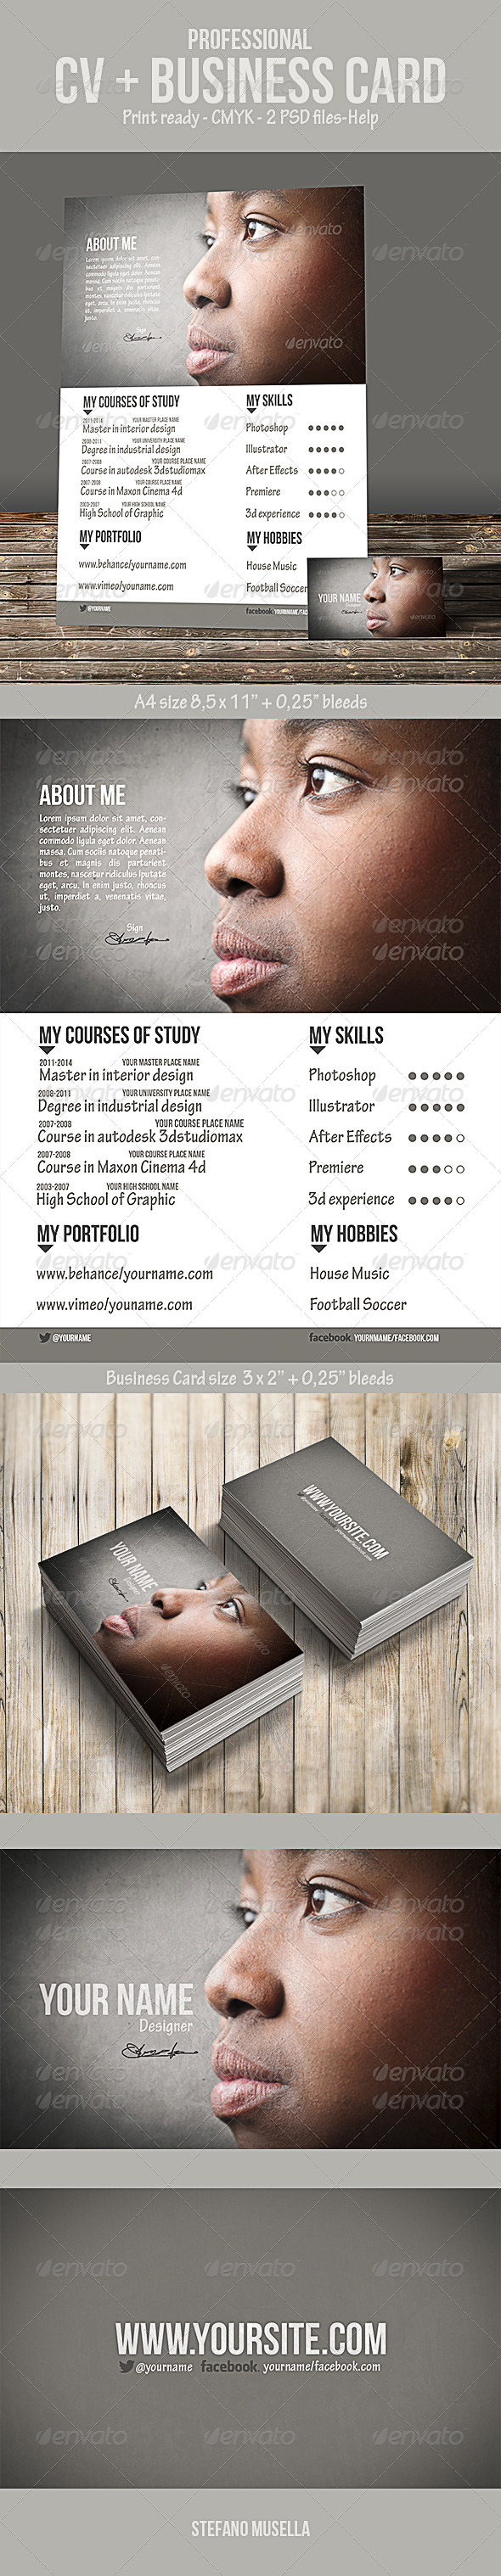 GraphicRiver Cv and Business Card 7019338